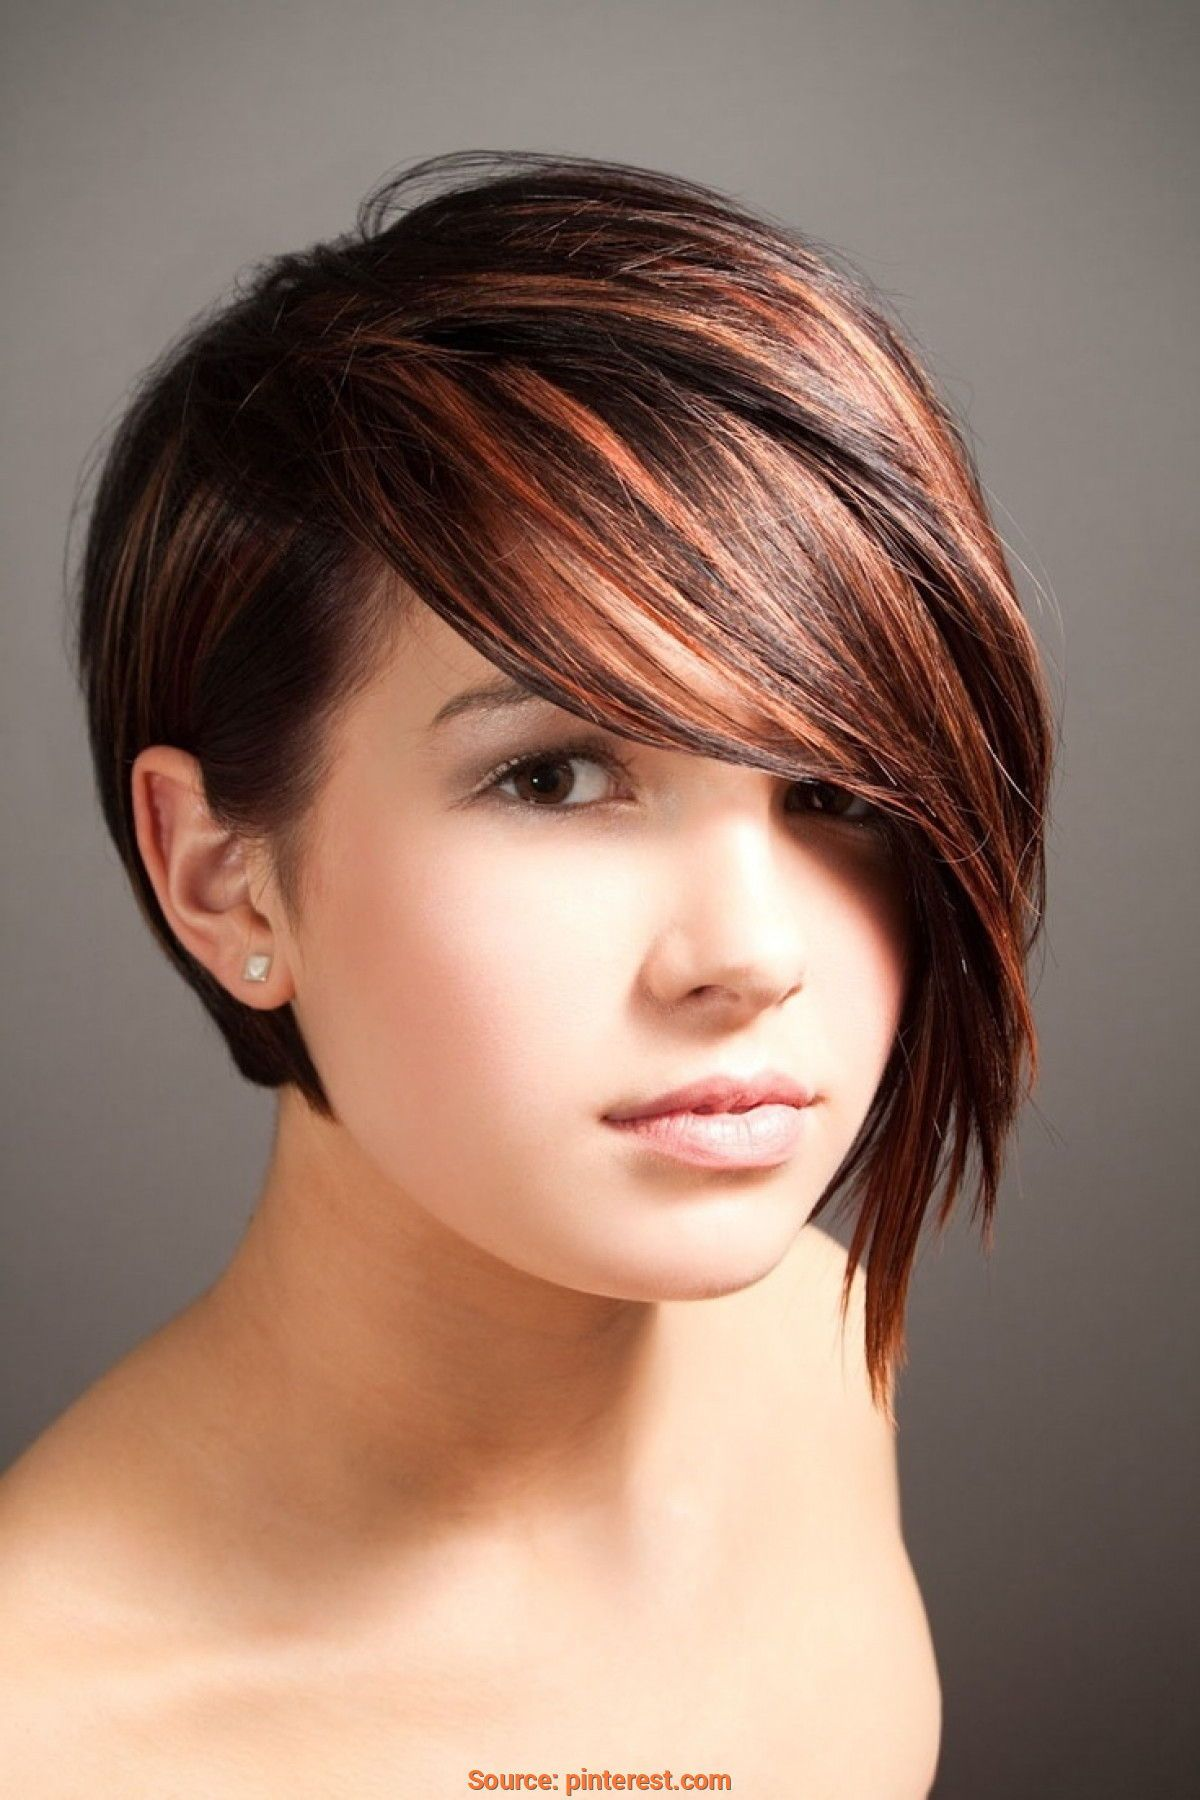 lovely short emo hairstyles for women u i bet you havenut seen